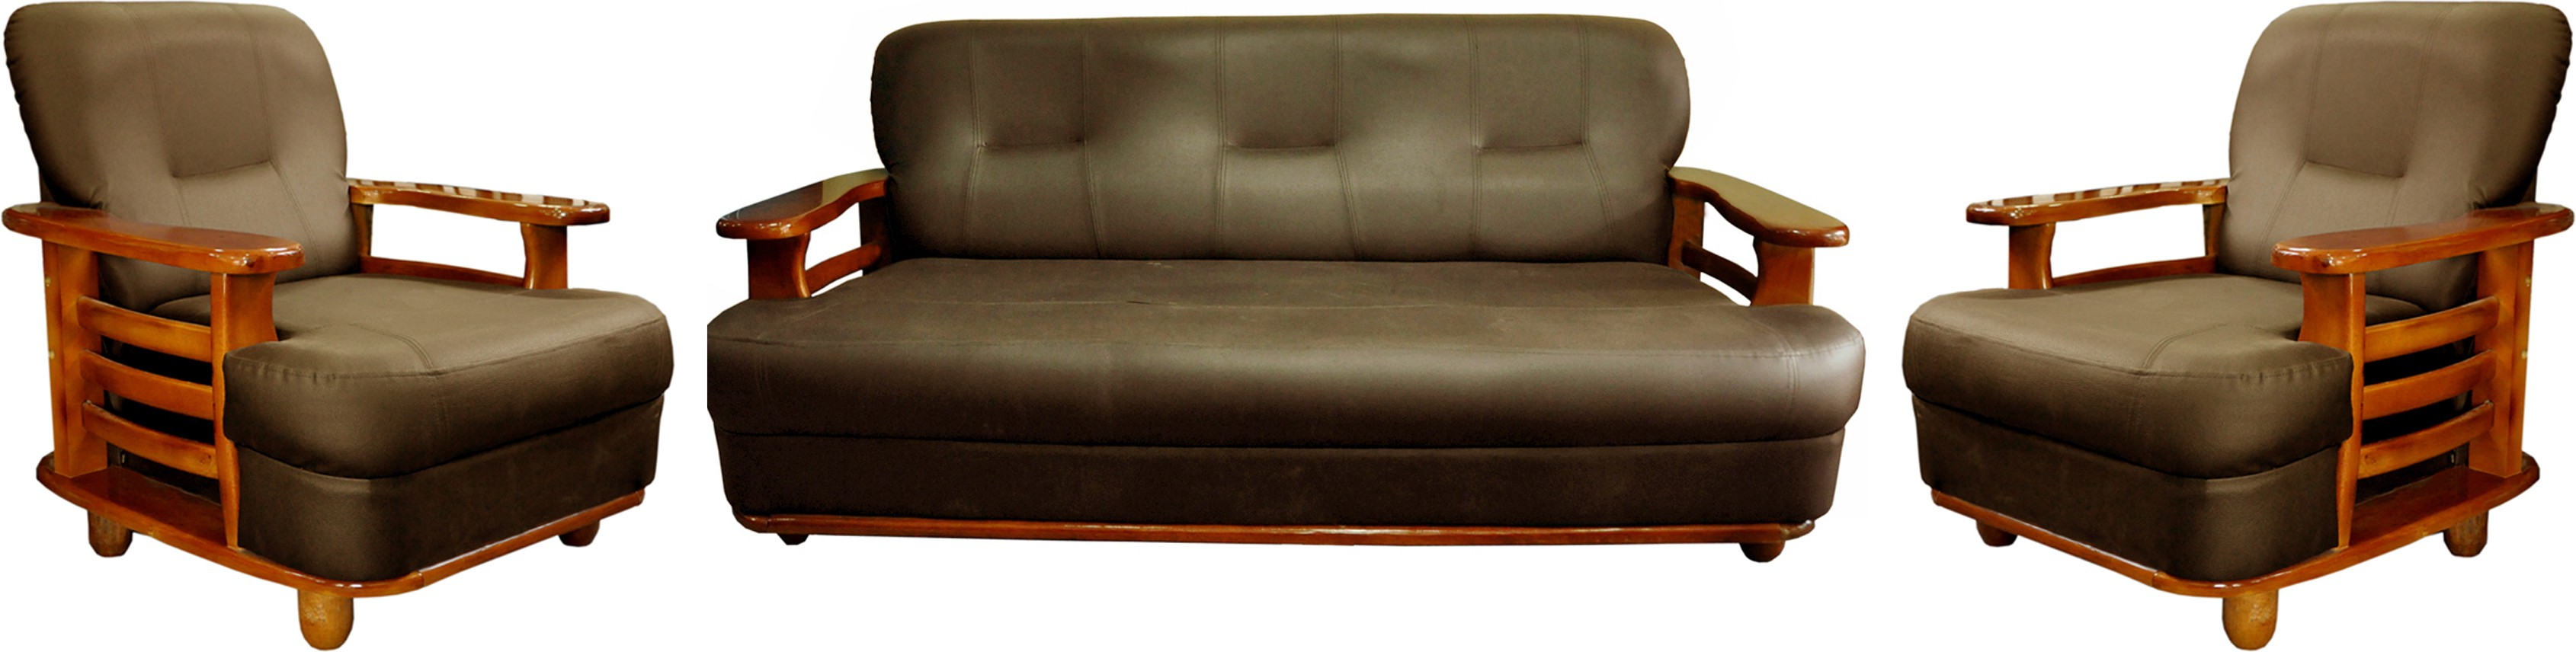 Magnificent Buy Knight Industry Leatherette 3 1 1 Walnut Brown Sofa Cjindustries Chair Design For Home Cjindustriesco